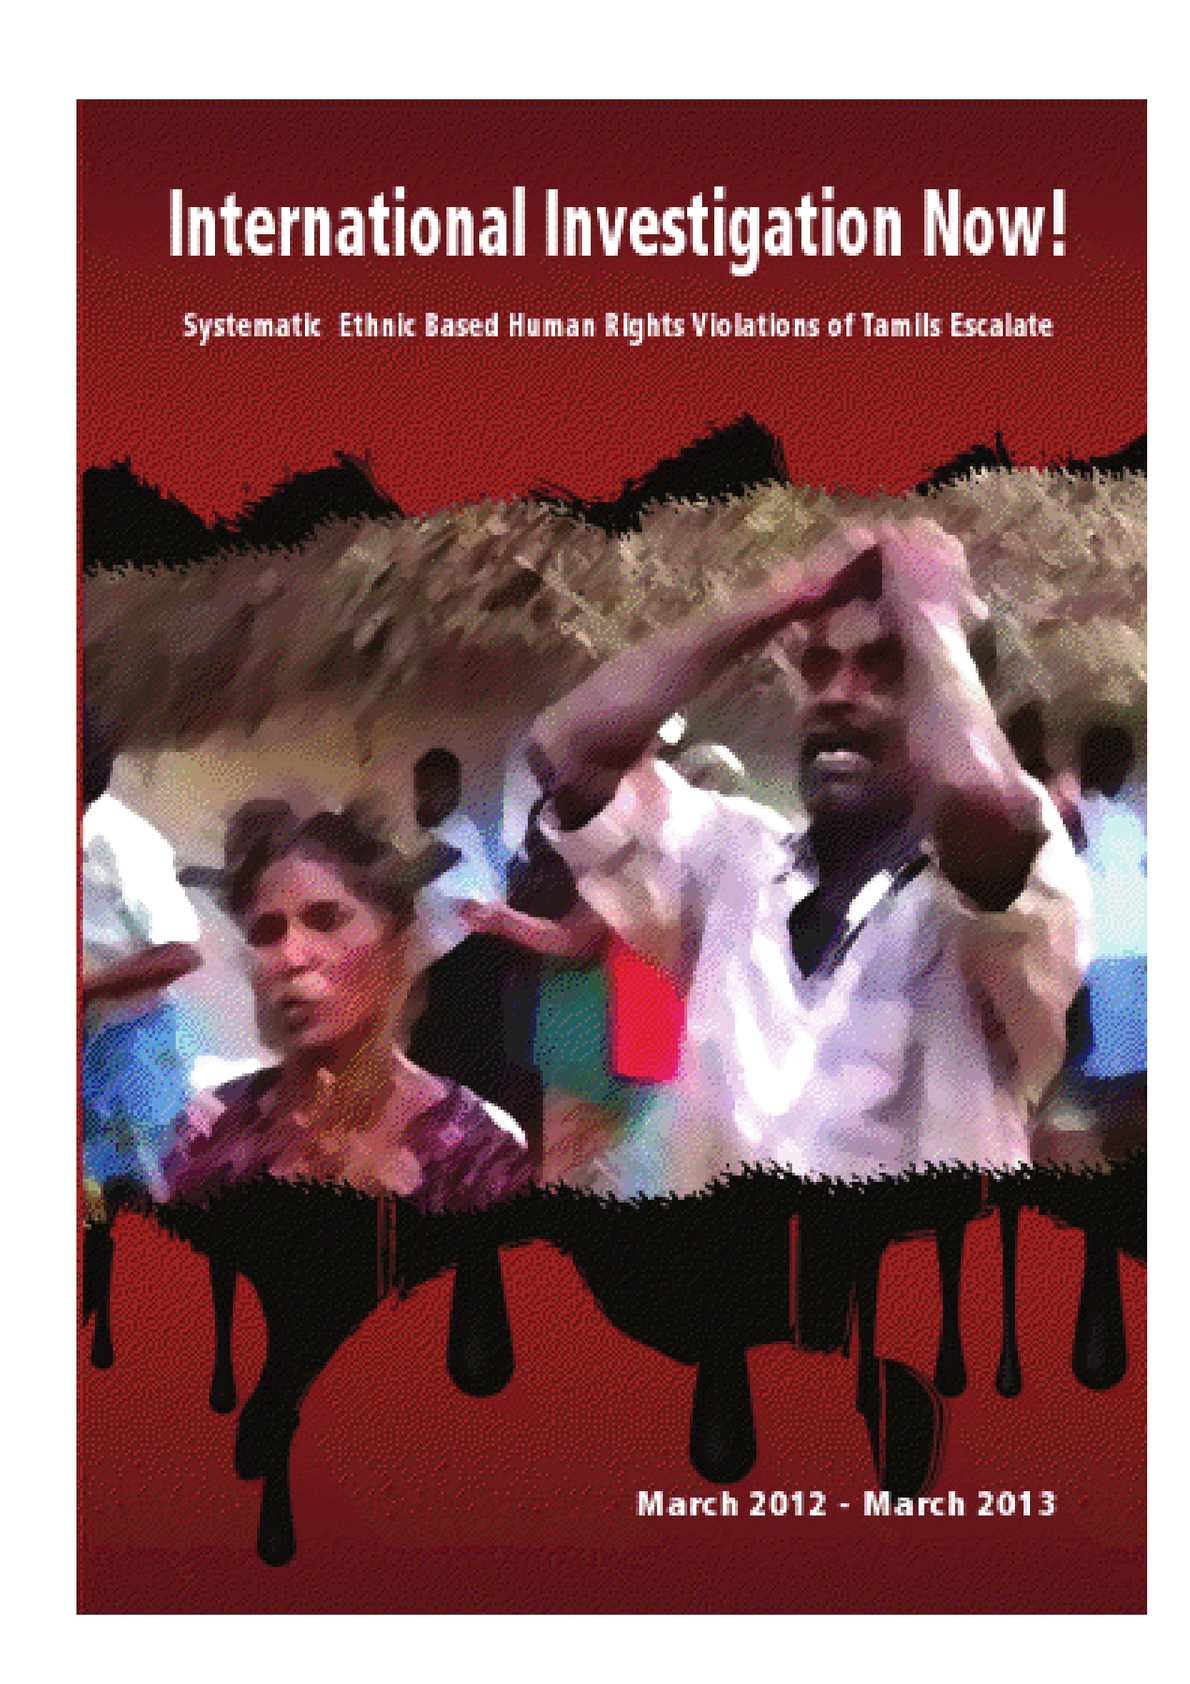 International Investigation Now - Systematic Ethnic Based Human Rights Violations of Tamils Escalate: Booklet by TGTE